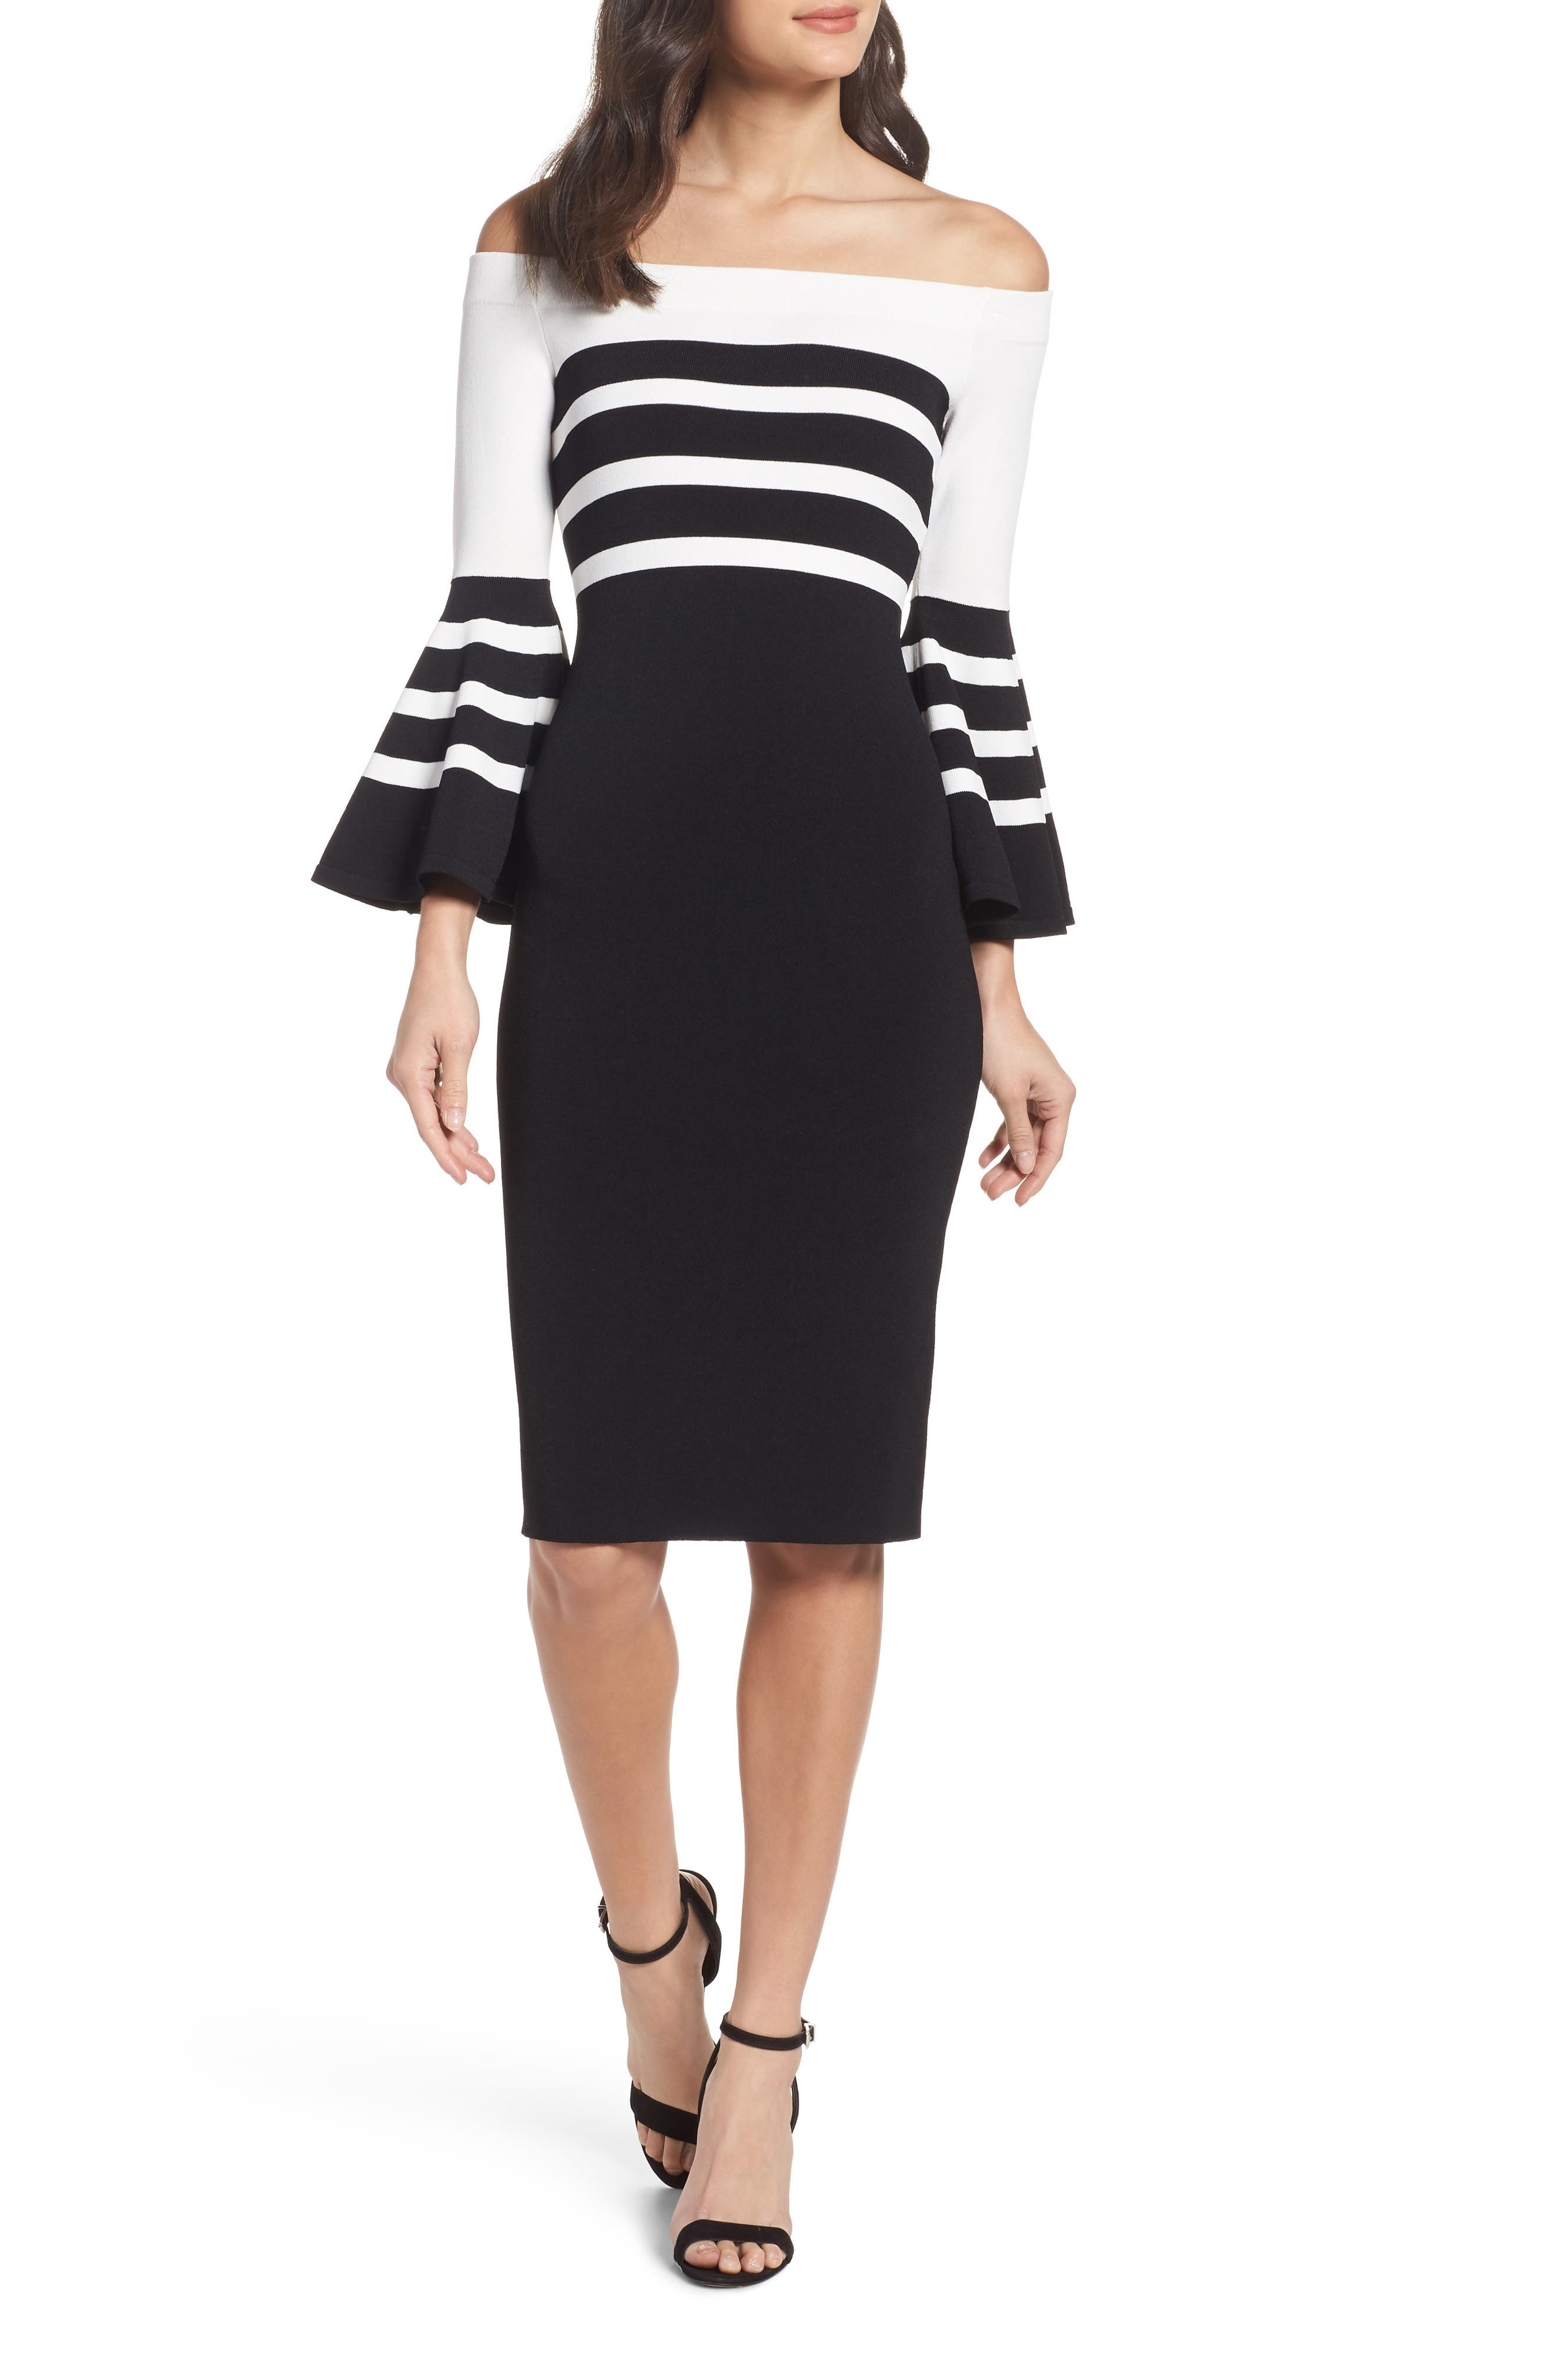 Off the Shoulder Sweater Dress,                         Main,                         color, Black/ White Stripe